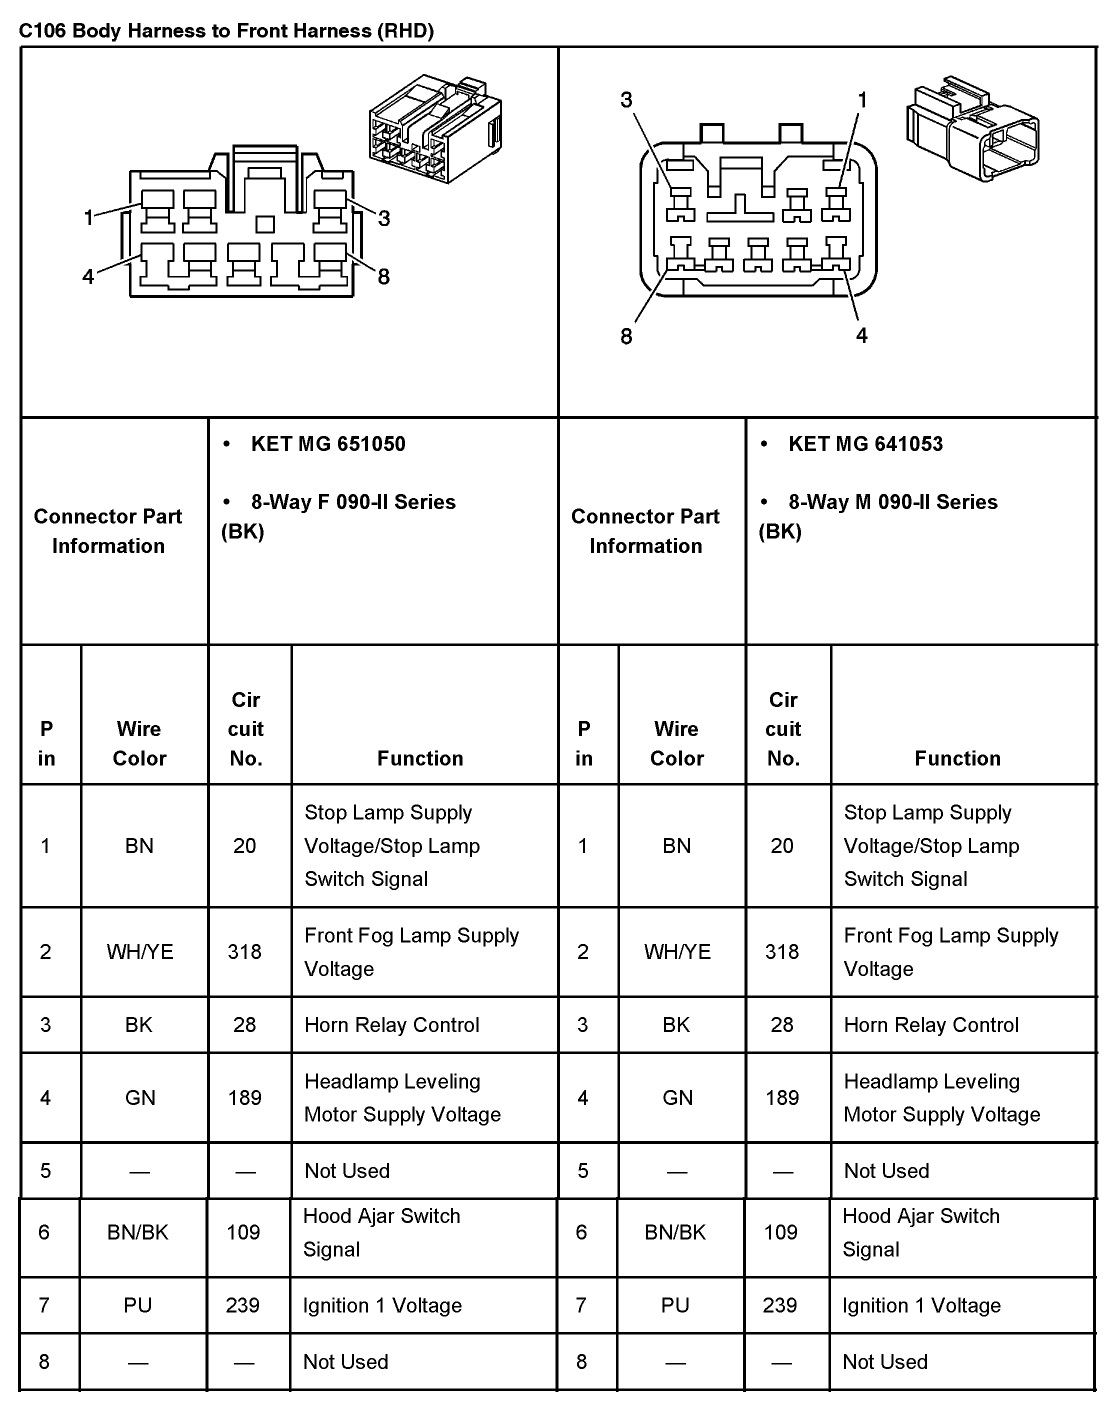 2005 Aveo Master Connector List And Diagrams 2008 Silverado Engine Wiring Harness